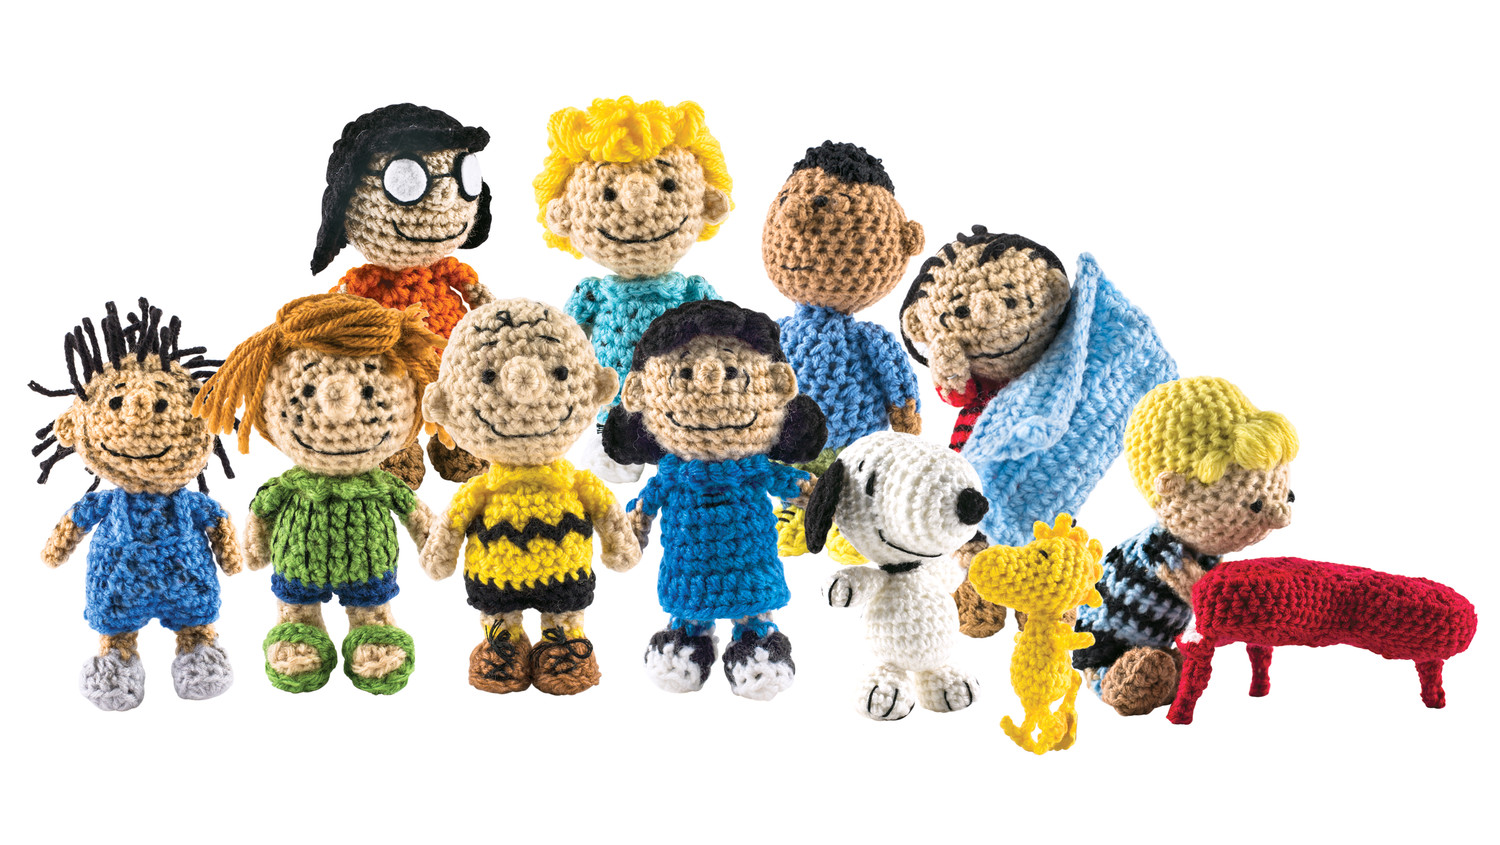 Cartoon Characters Knitting Patterns : The peanuts gang is back as a cast of crocheted